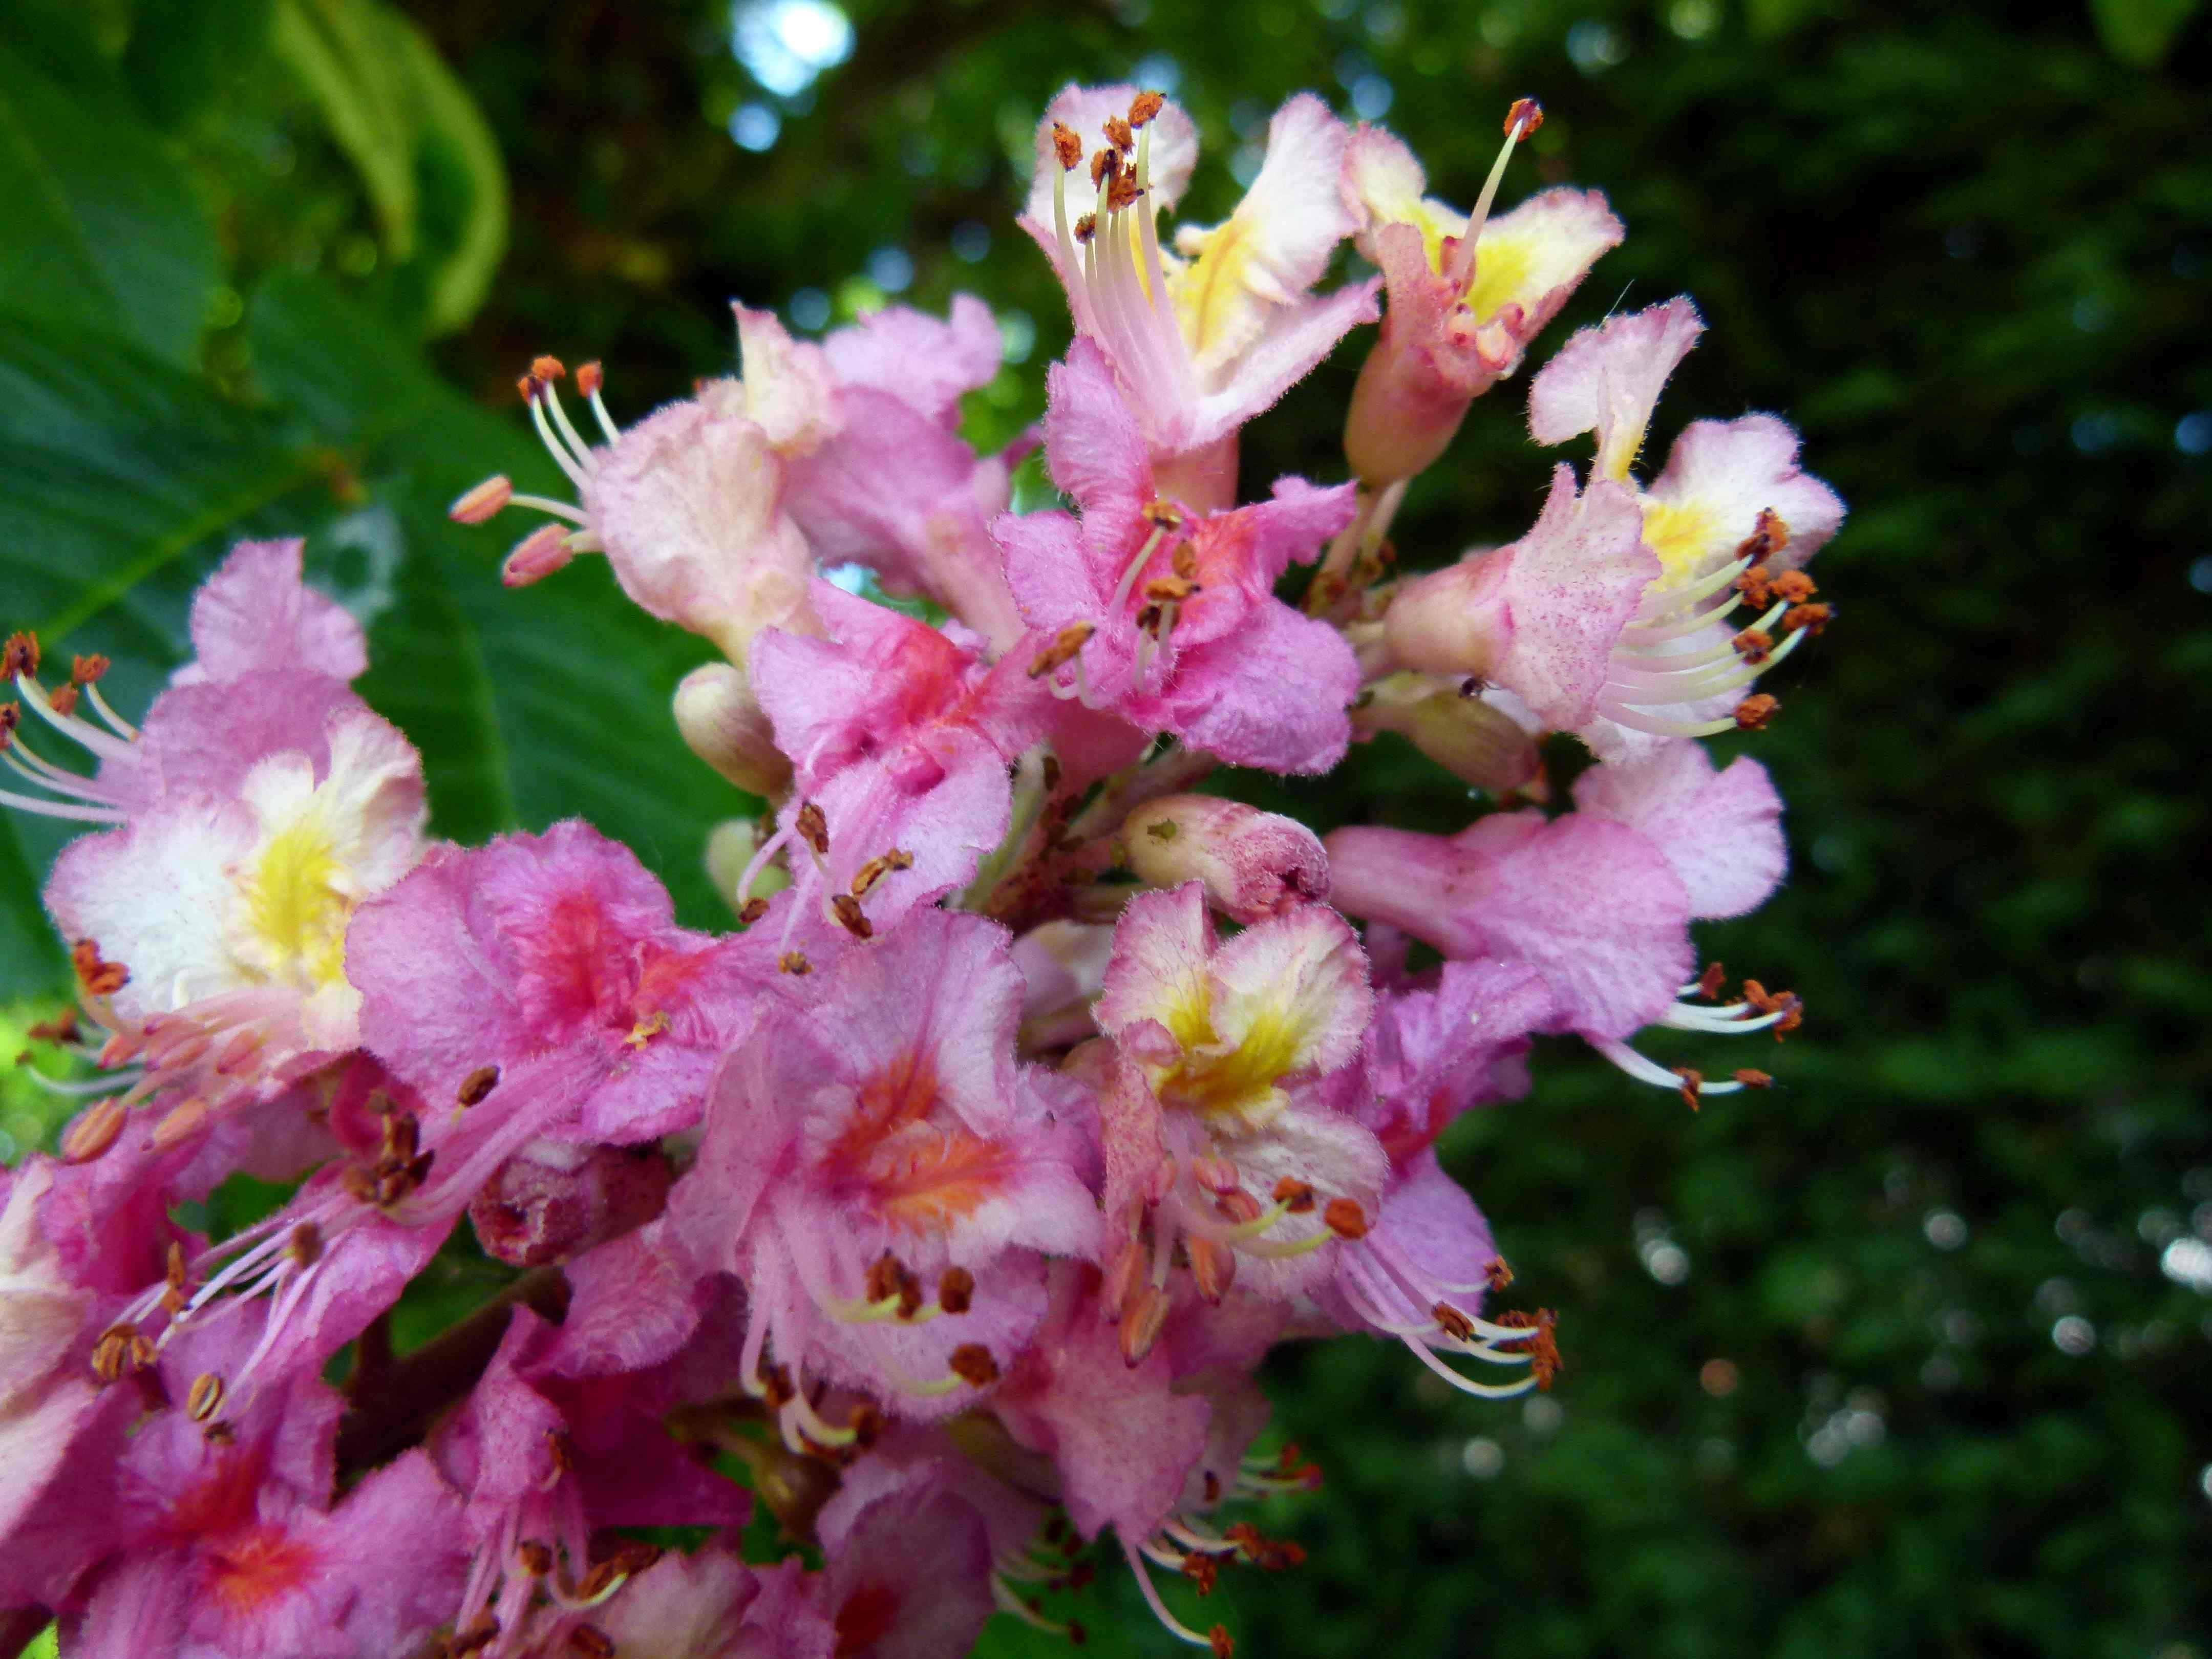 Horse chestnut tree flowers fables and flora image image mightylinksfo Gallery